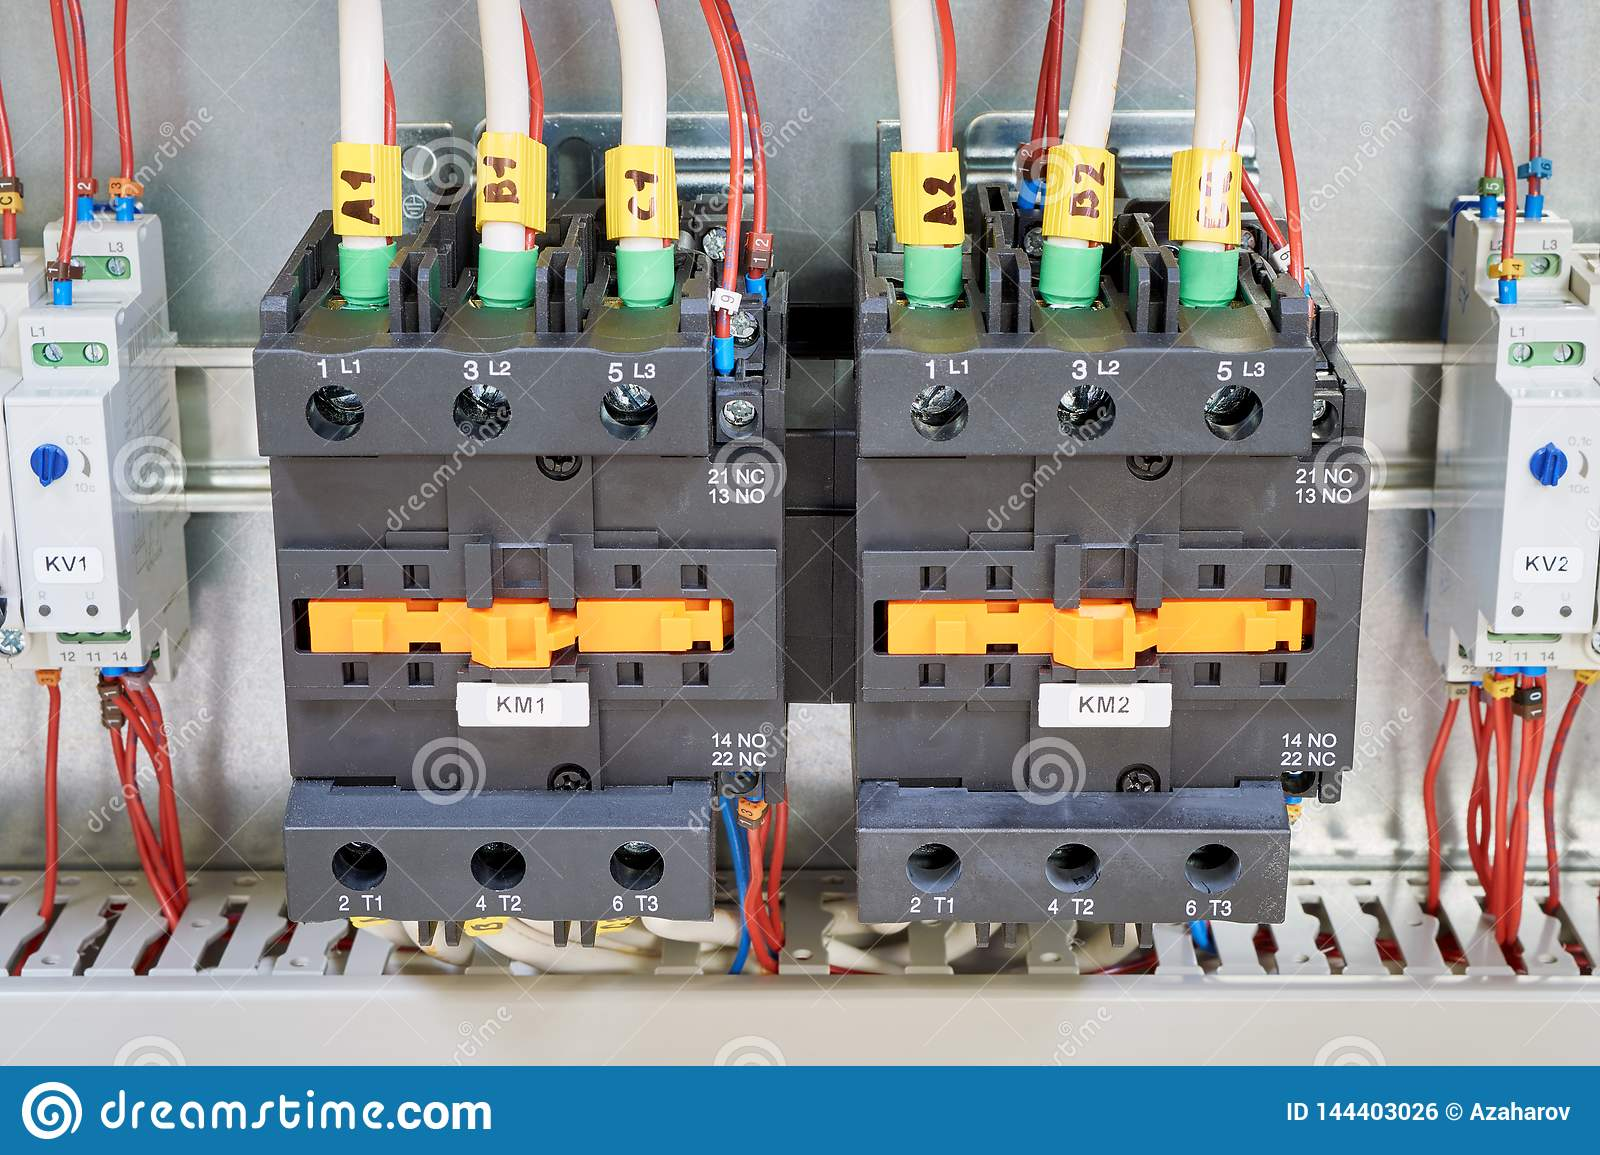 hight resolution of electrical cables and wires are connected to two powerful magnetic starter or contactor on the sides of the modular time relay with adjustment